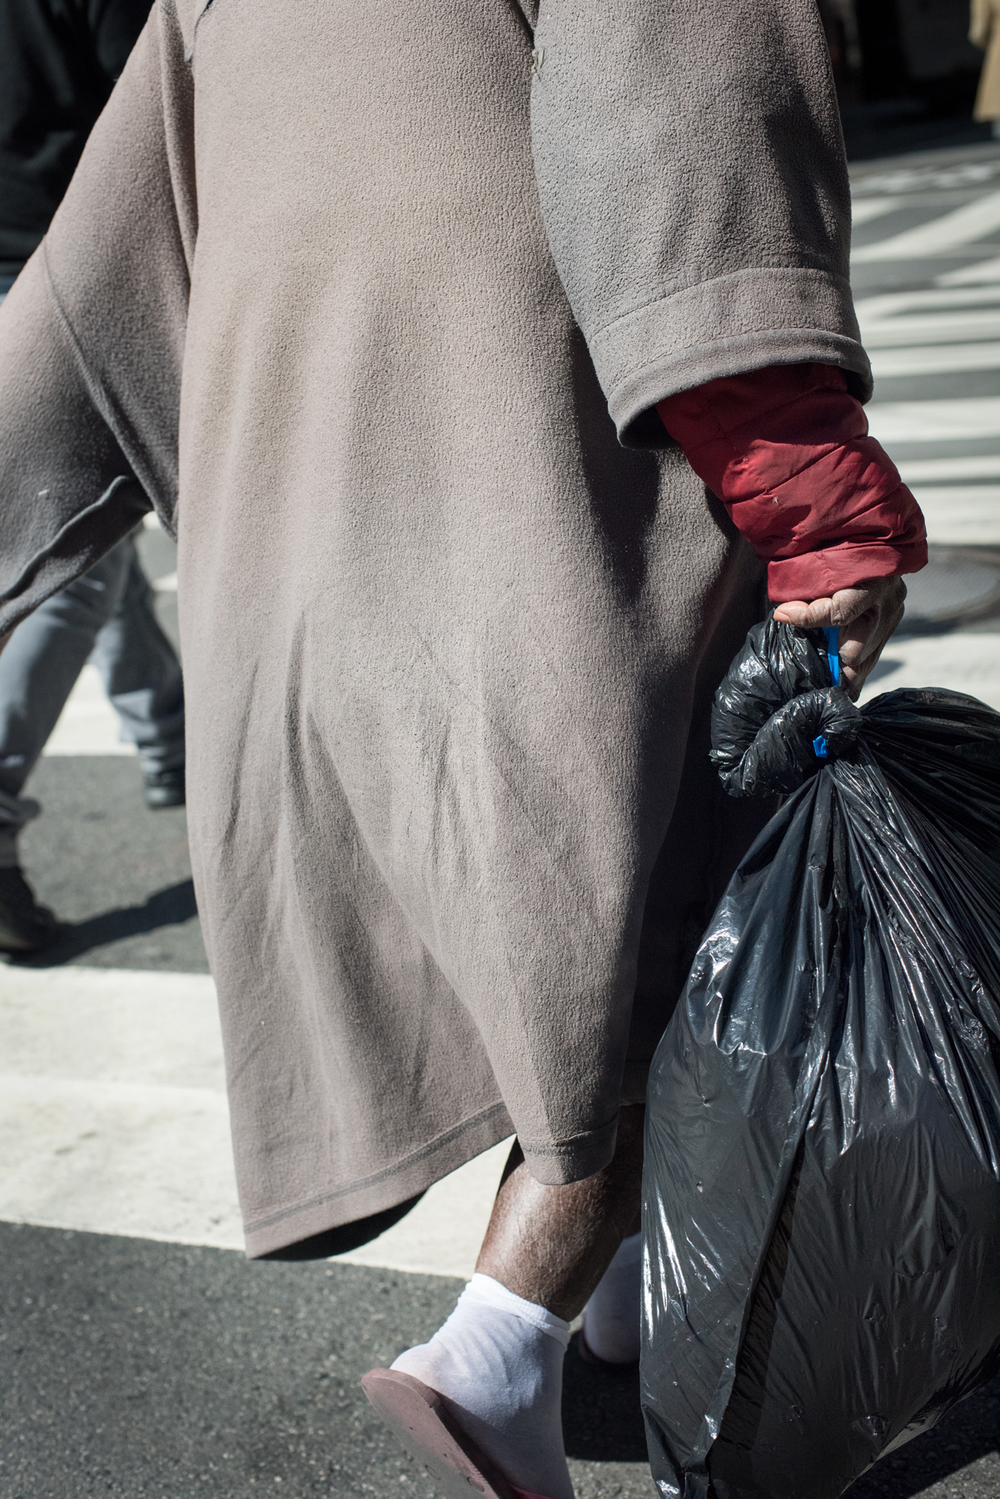 Man with Garbage Bag